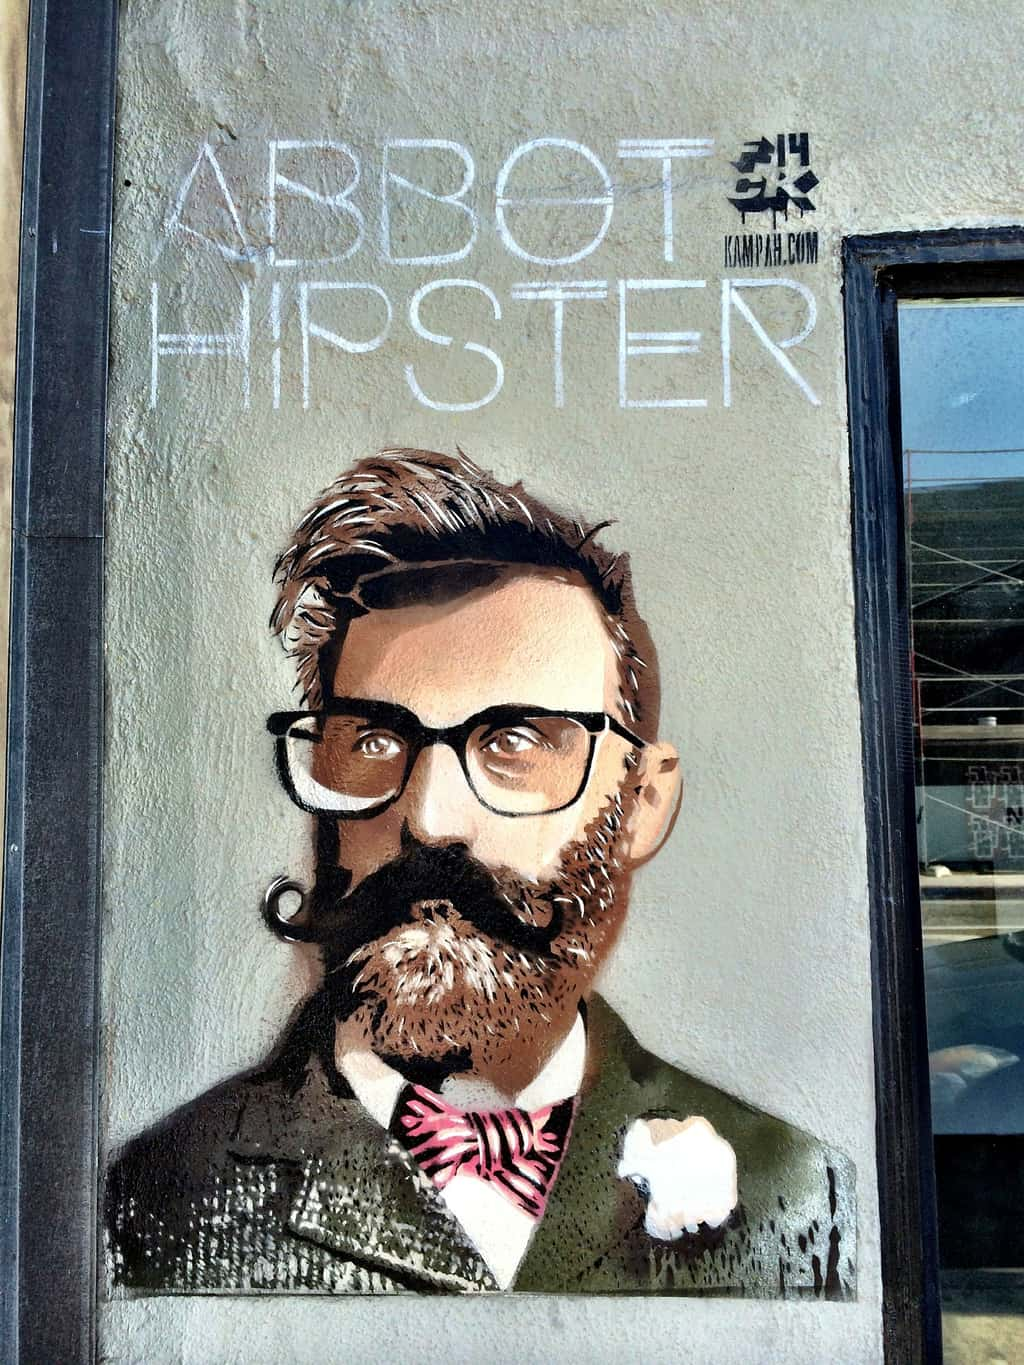 Graffiti picture of a hipster on a grey wall. The hipster has a quiff, glasses and a beard and twirled moustache. He wears a tweed suit with a bowtie